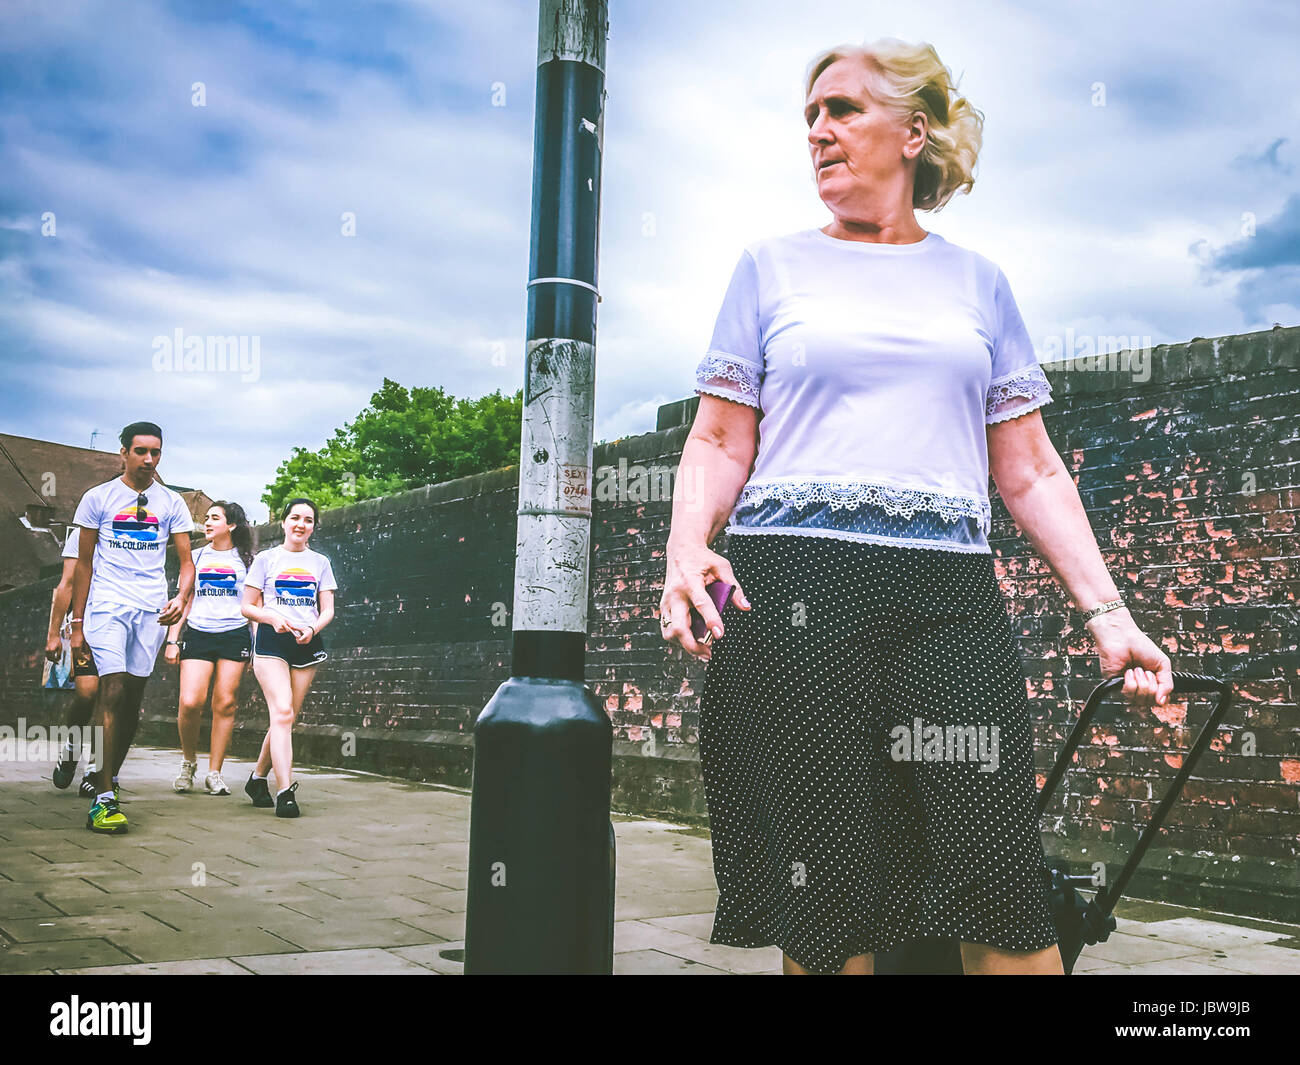 Street photography of a mid-50's woman walking in front of group youngster who is going to the color Run event - Stock Image